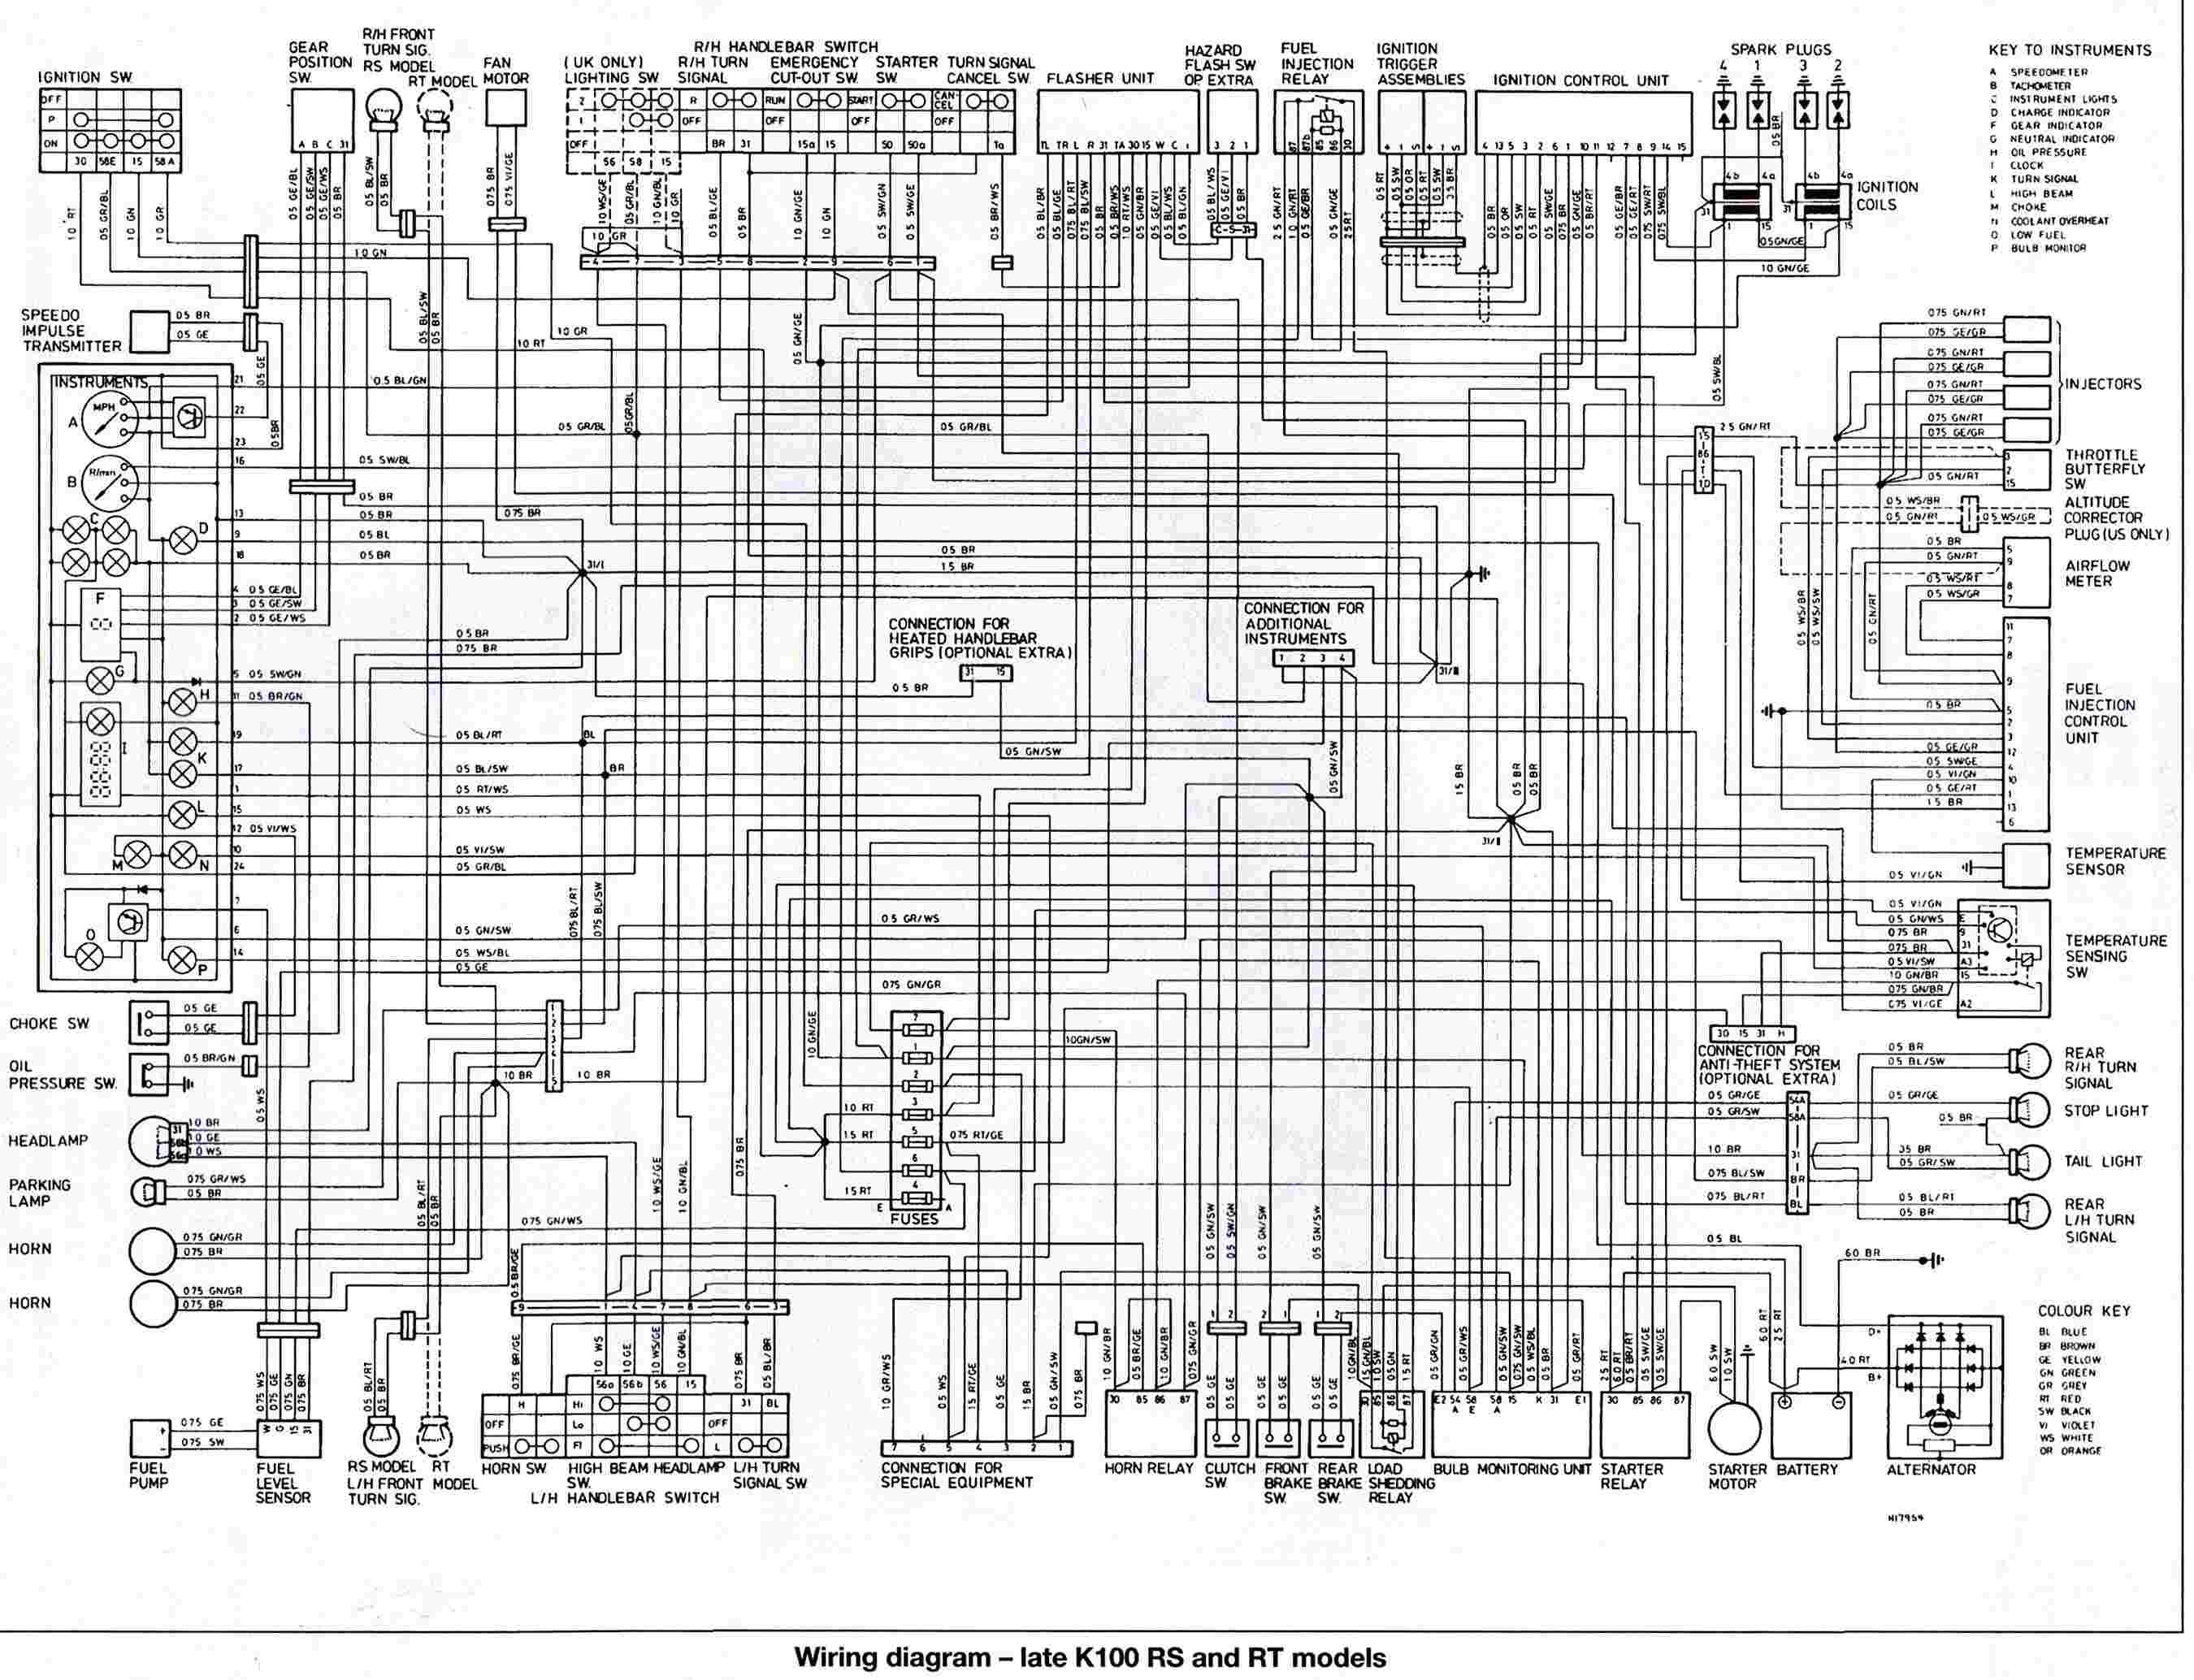 wiring installation diagram ktm 450 exc crayonbox bmw z4 fuse box and